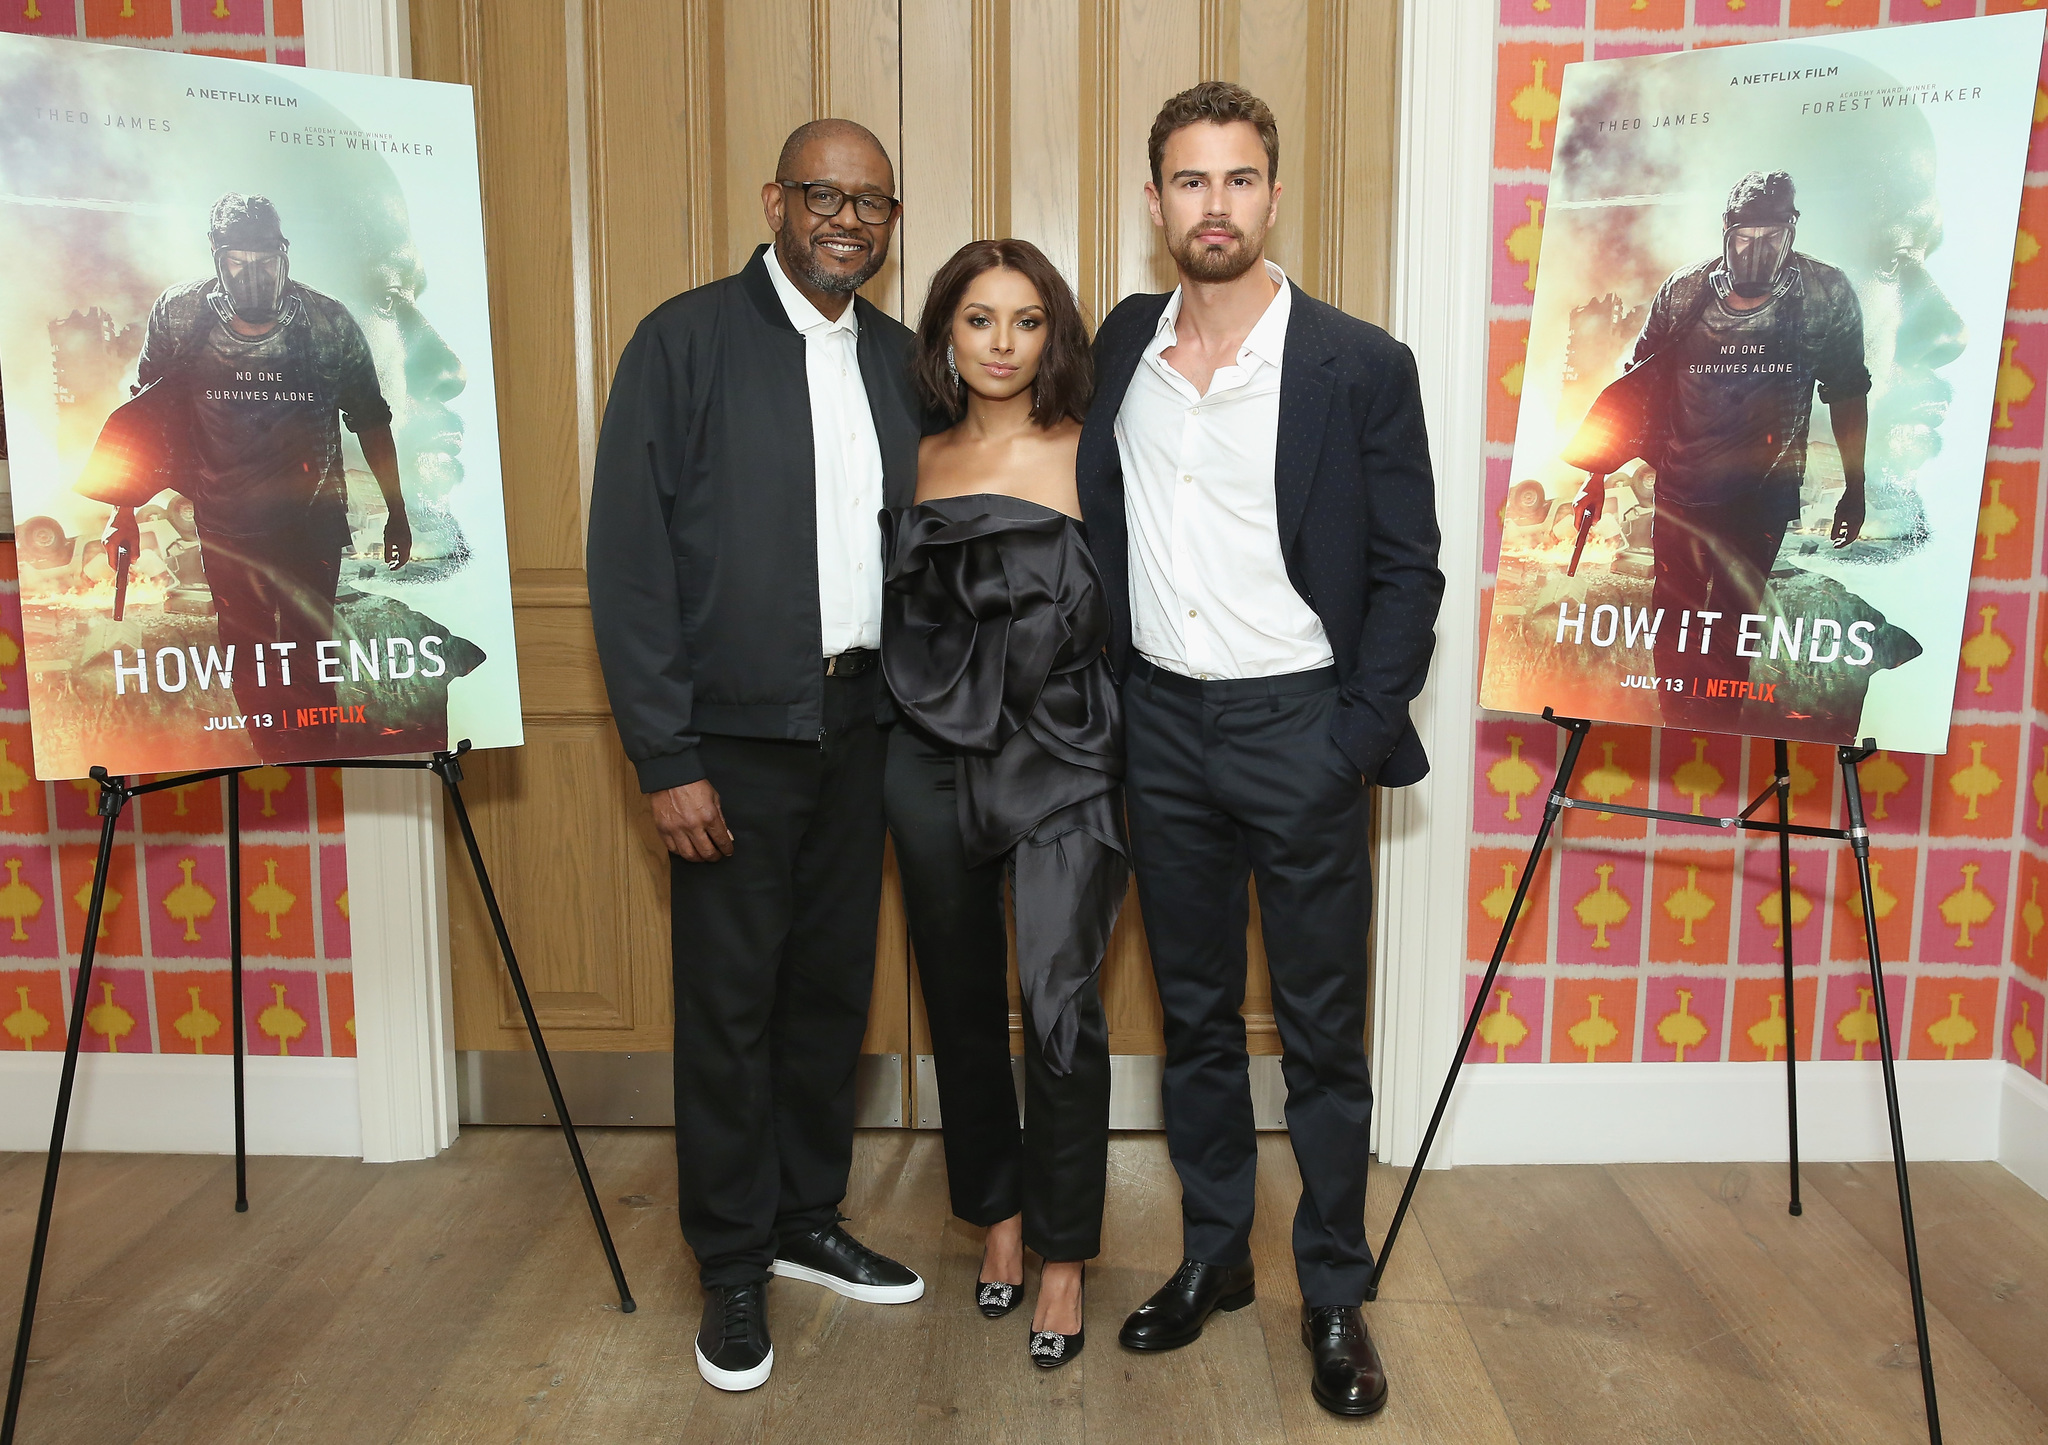 Forest Whitaker, Kat Graham, and Theo James at an event for How It Ends (2018)